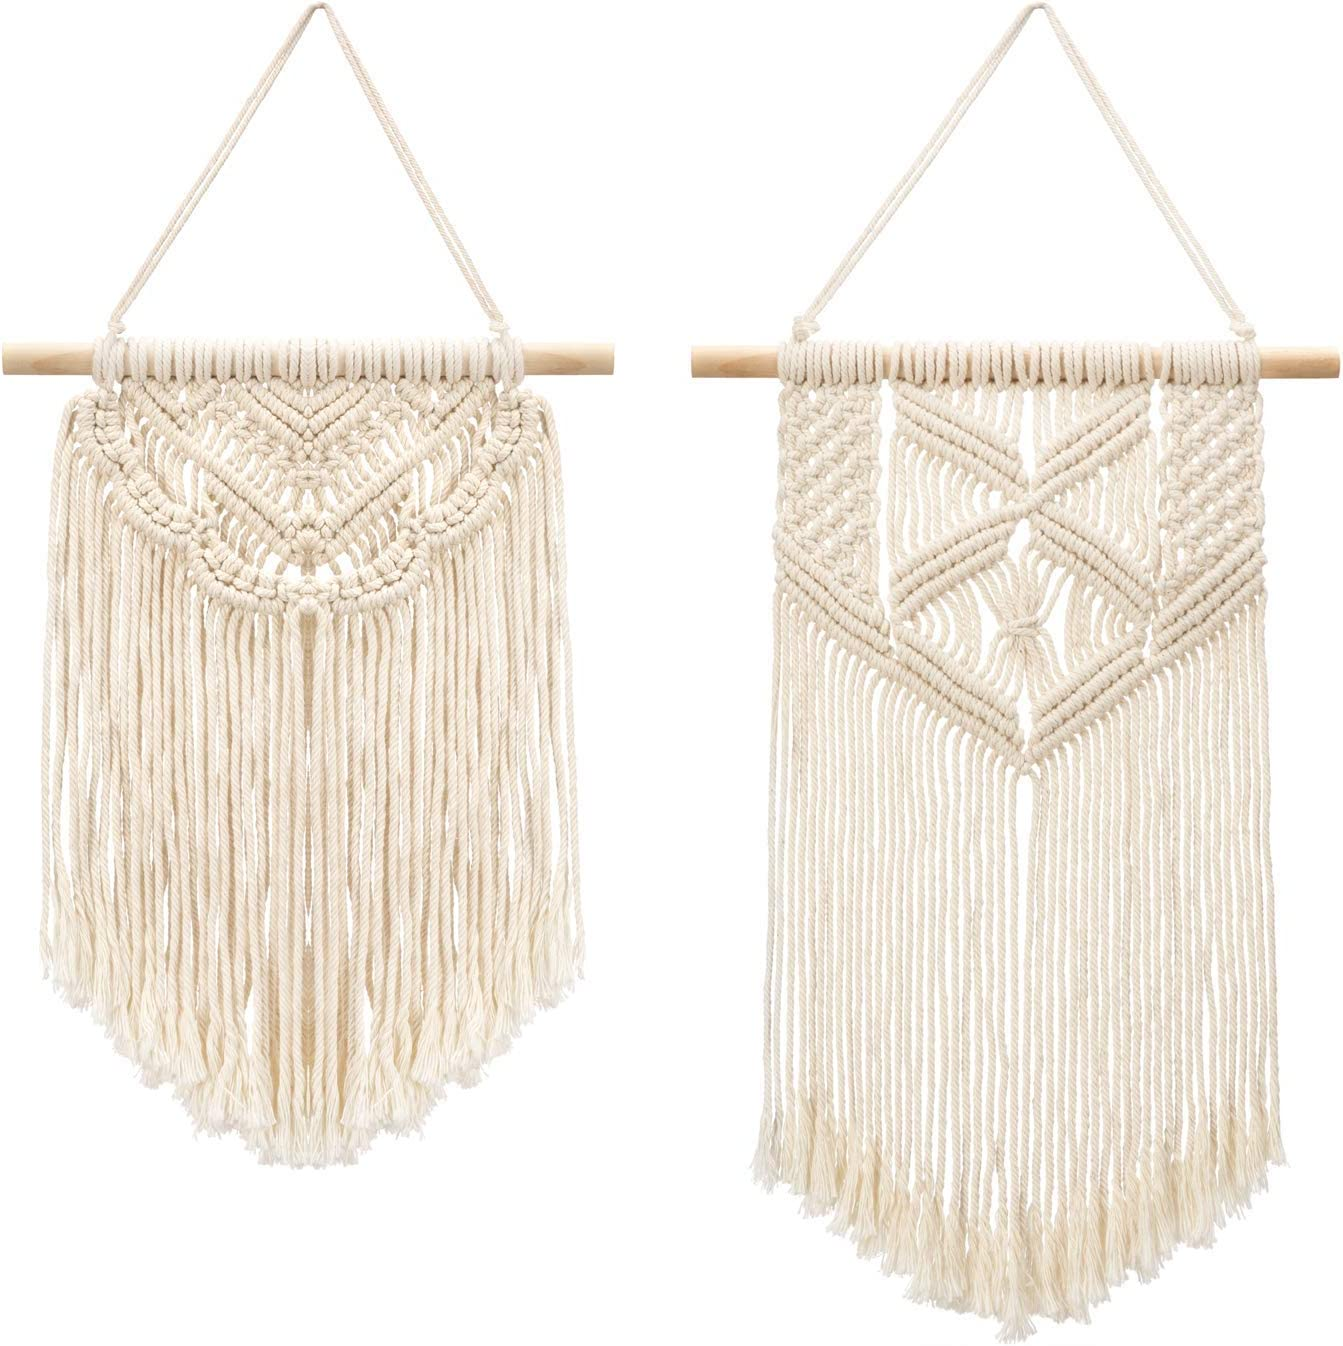 Mkouo 2 Pcs Macramé Colgar en la Pared Small Tapiz de Arte Tejido Boho Chic Home Decor Apartment Dorm Room Decoration, 30cm (L) x 25cm (W) and 40cm (L) x 25cm (W)